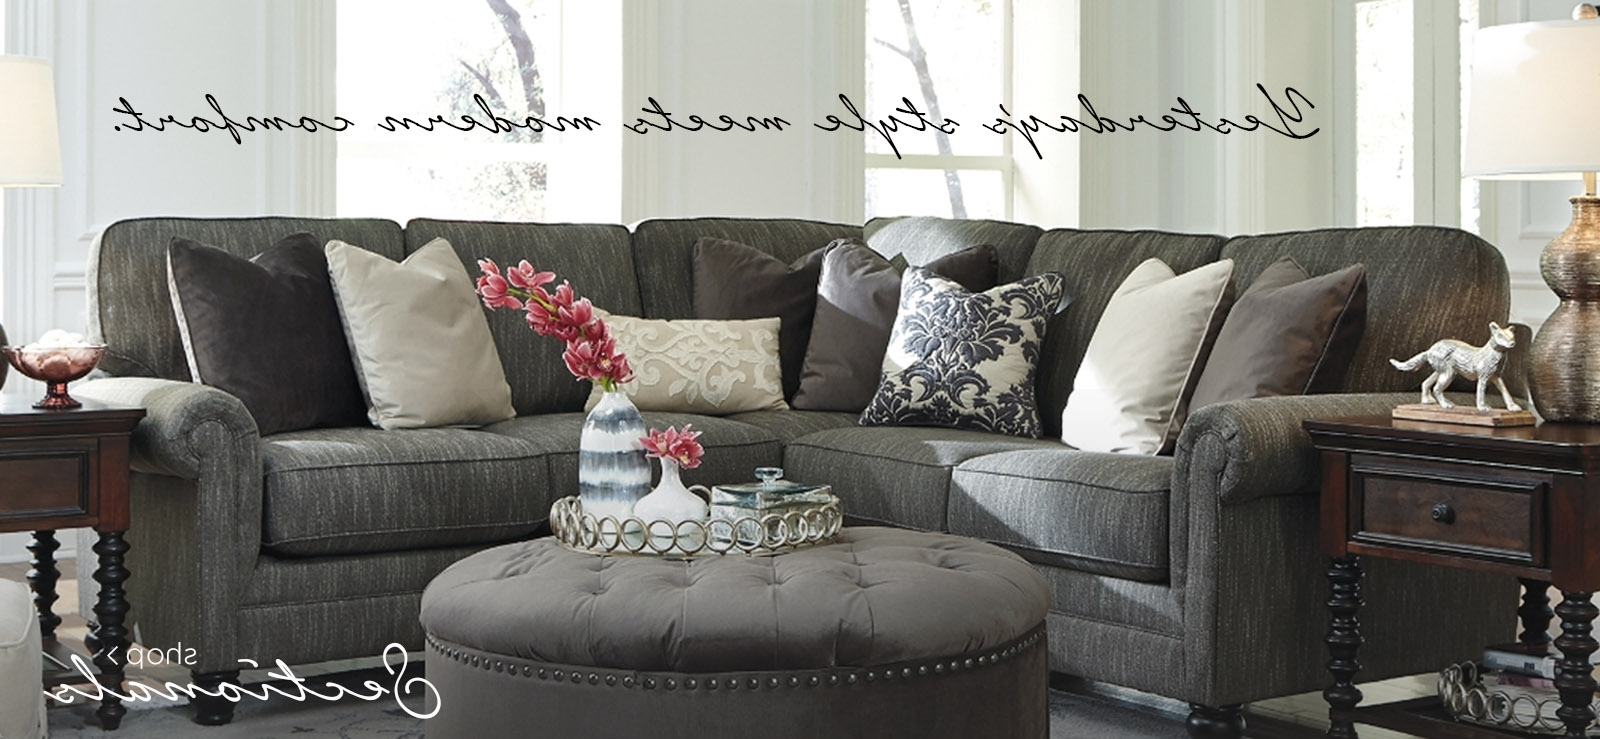 Well Known Casual Sofas And Chairs 88 With Casual Sofas And Chairs In Casual Sofas And Chairs (View 7 of 20)